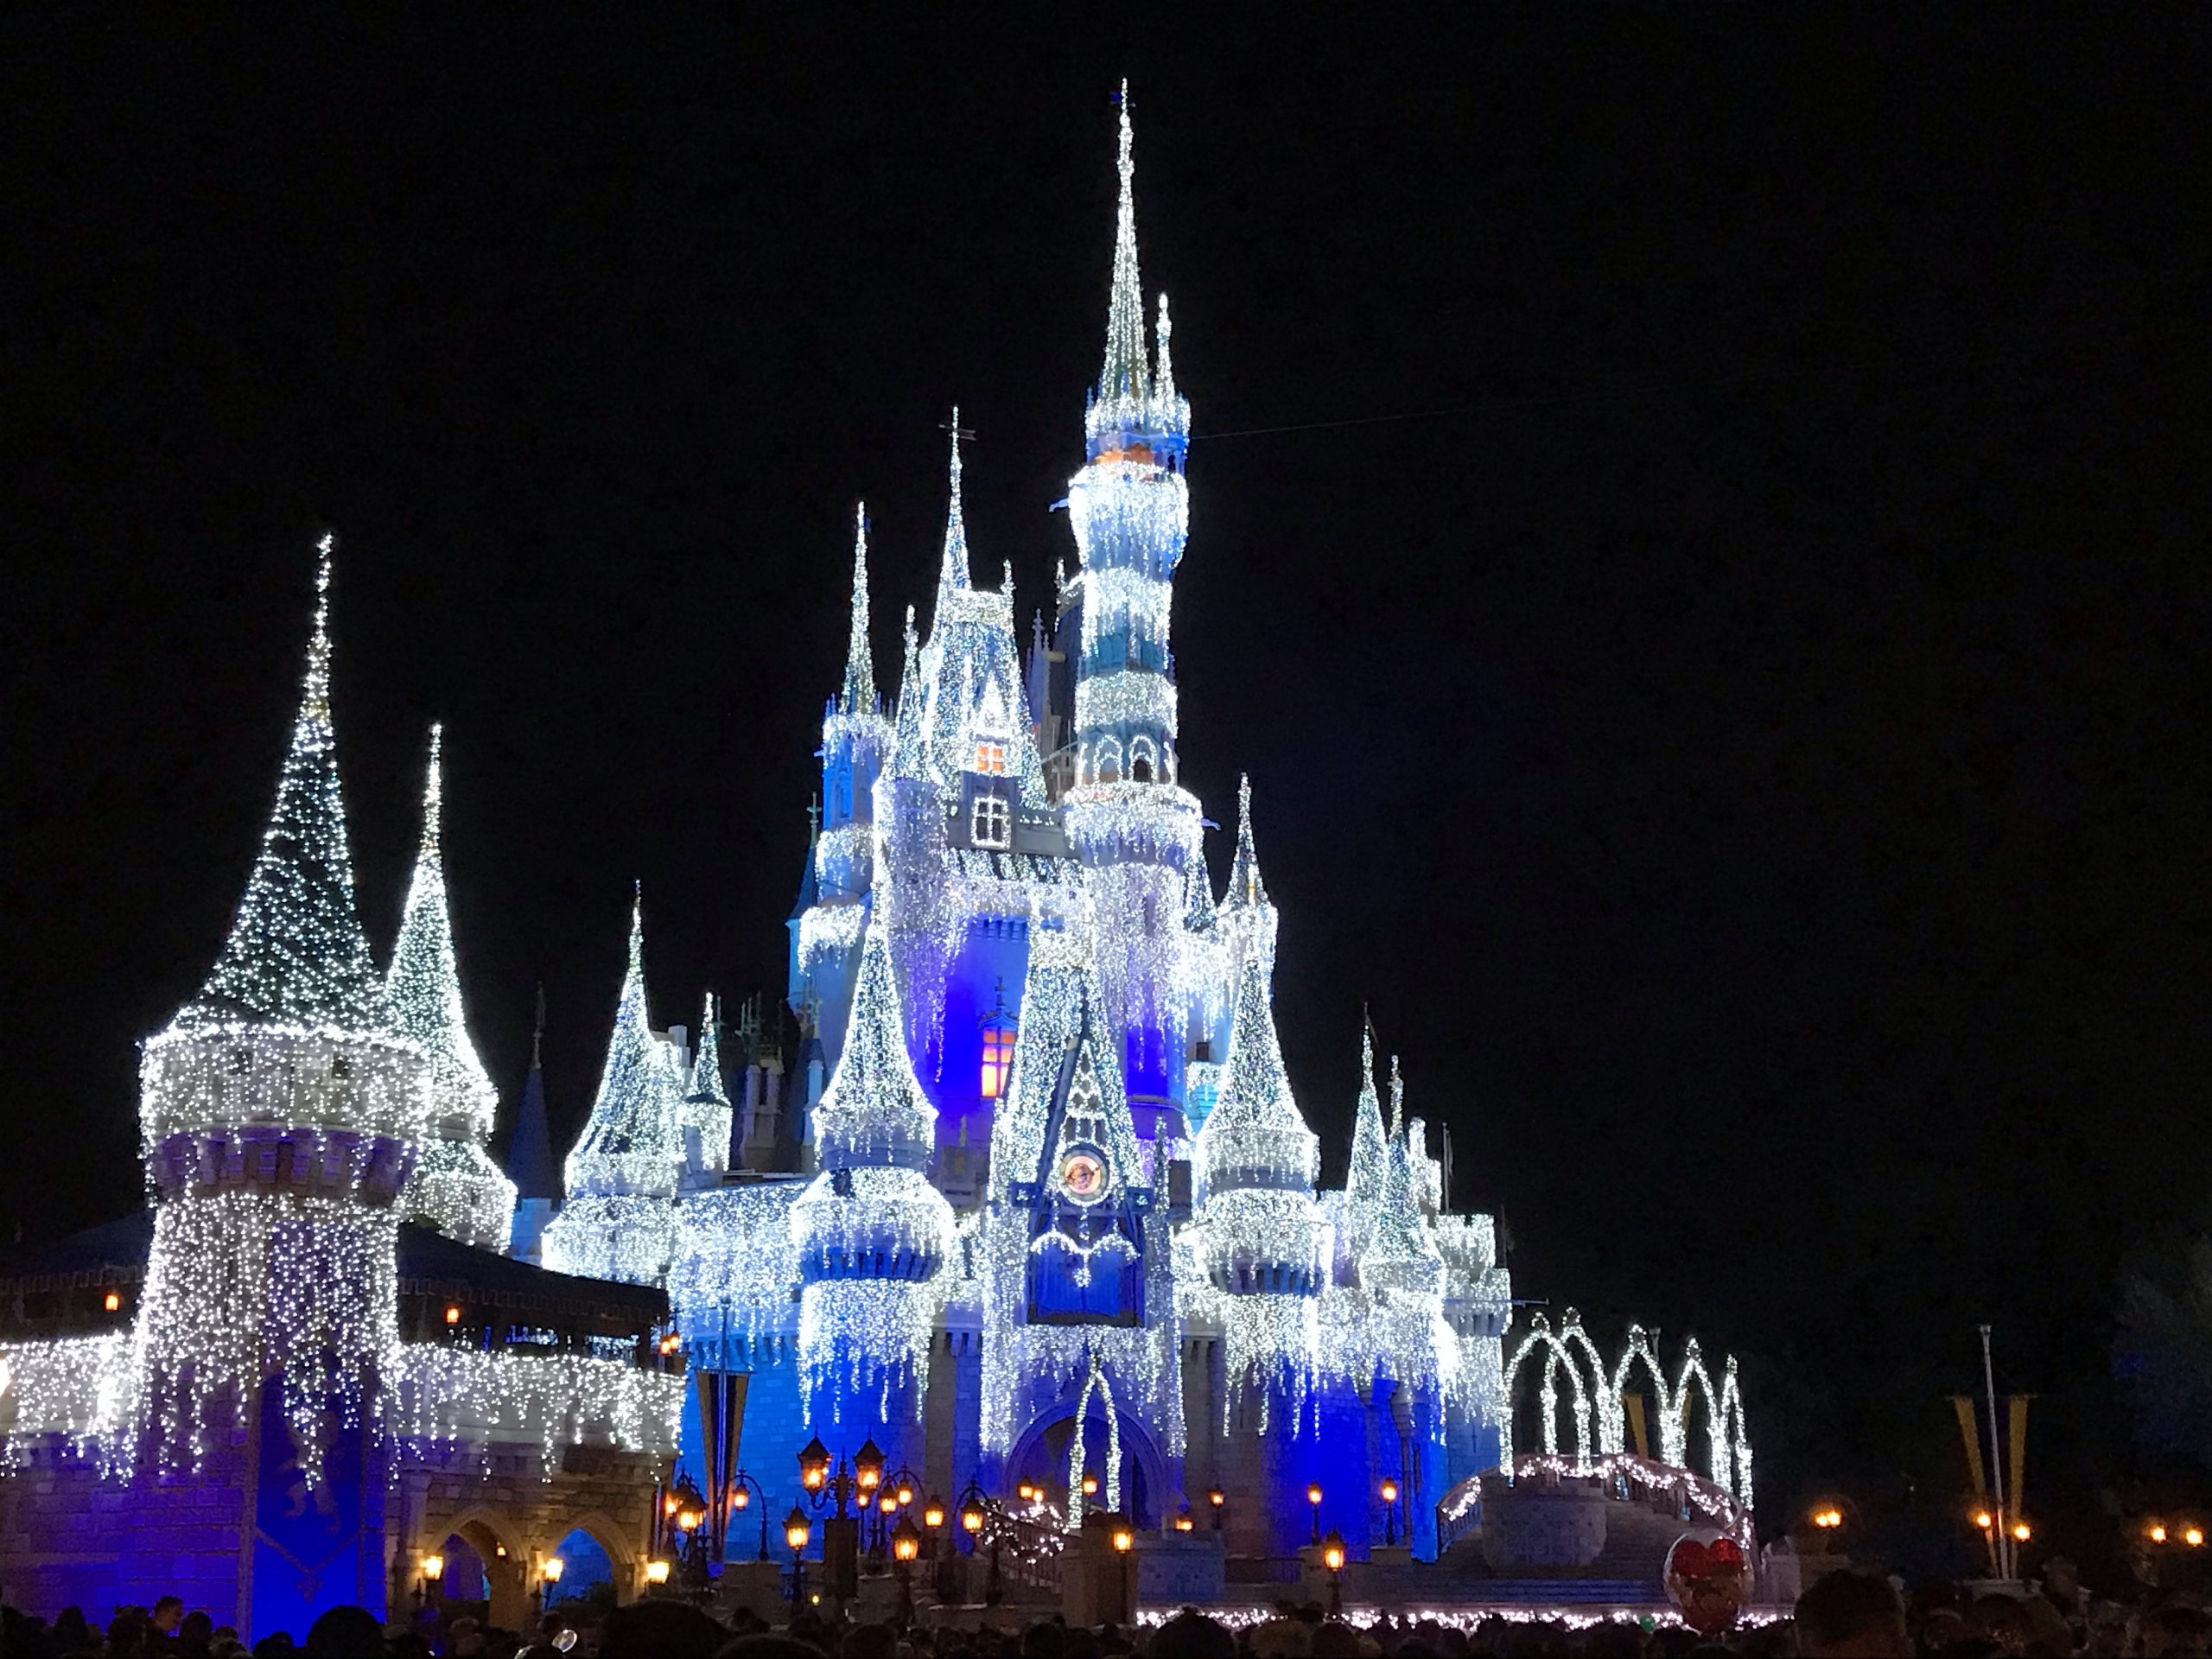 Live: Magic Kingdom New Years Eve Fireworks! 11:45 PM ET